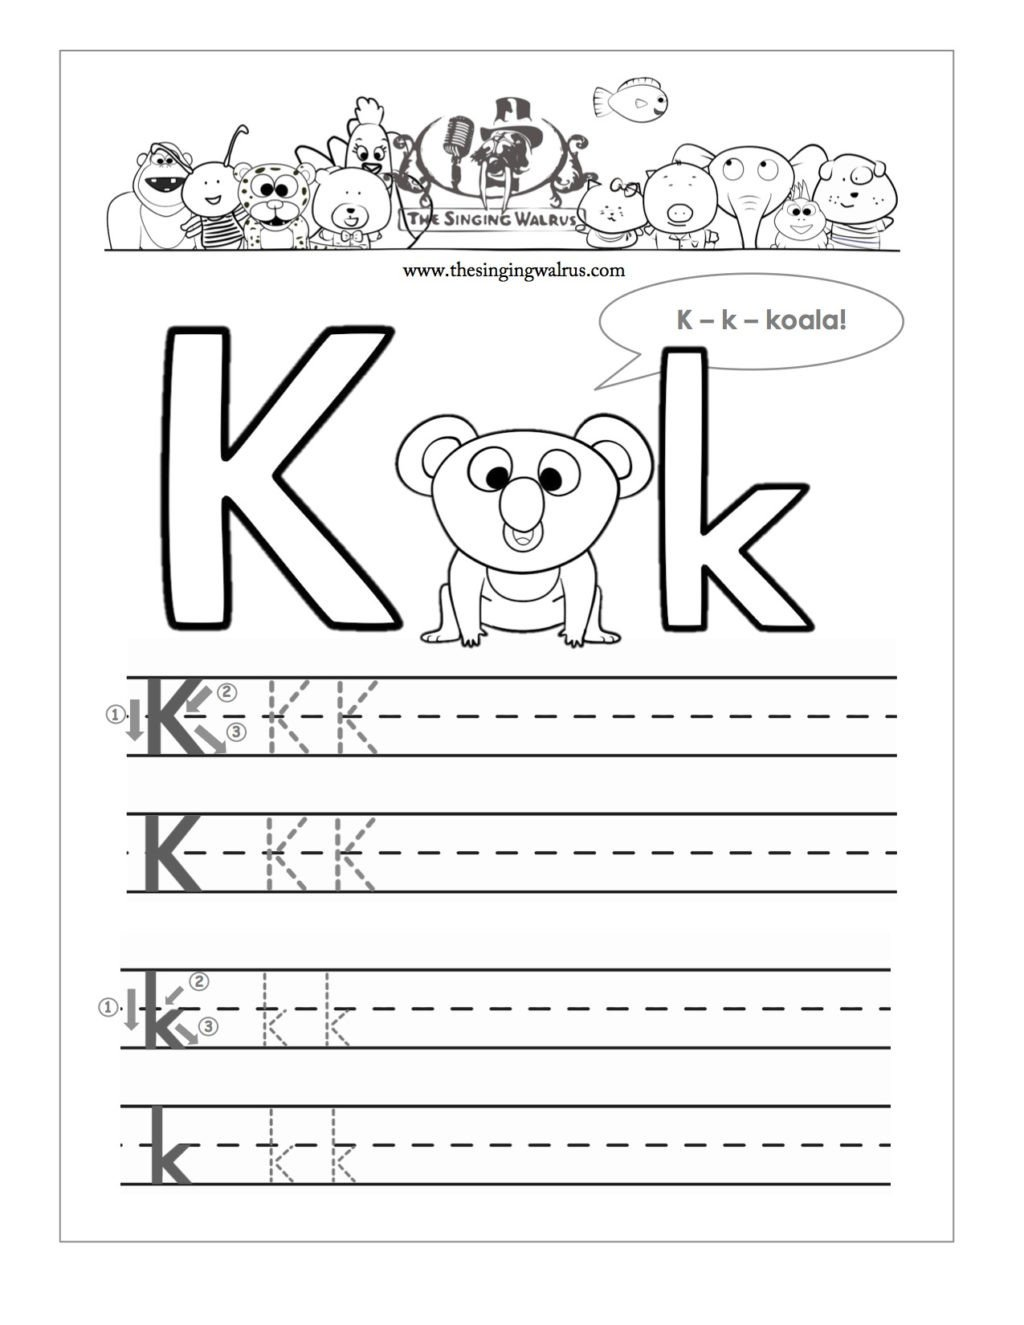 Letter K Tracing Worksheets Preschool Worksheet Free Printable Letter K Barkaorksheetorksheets